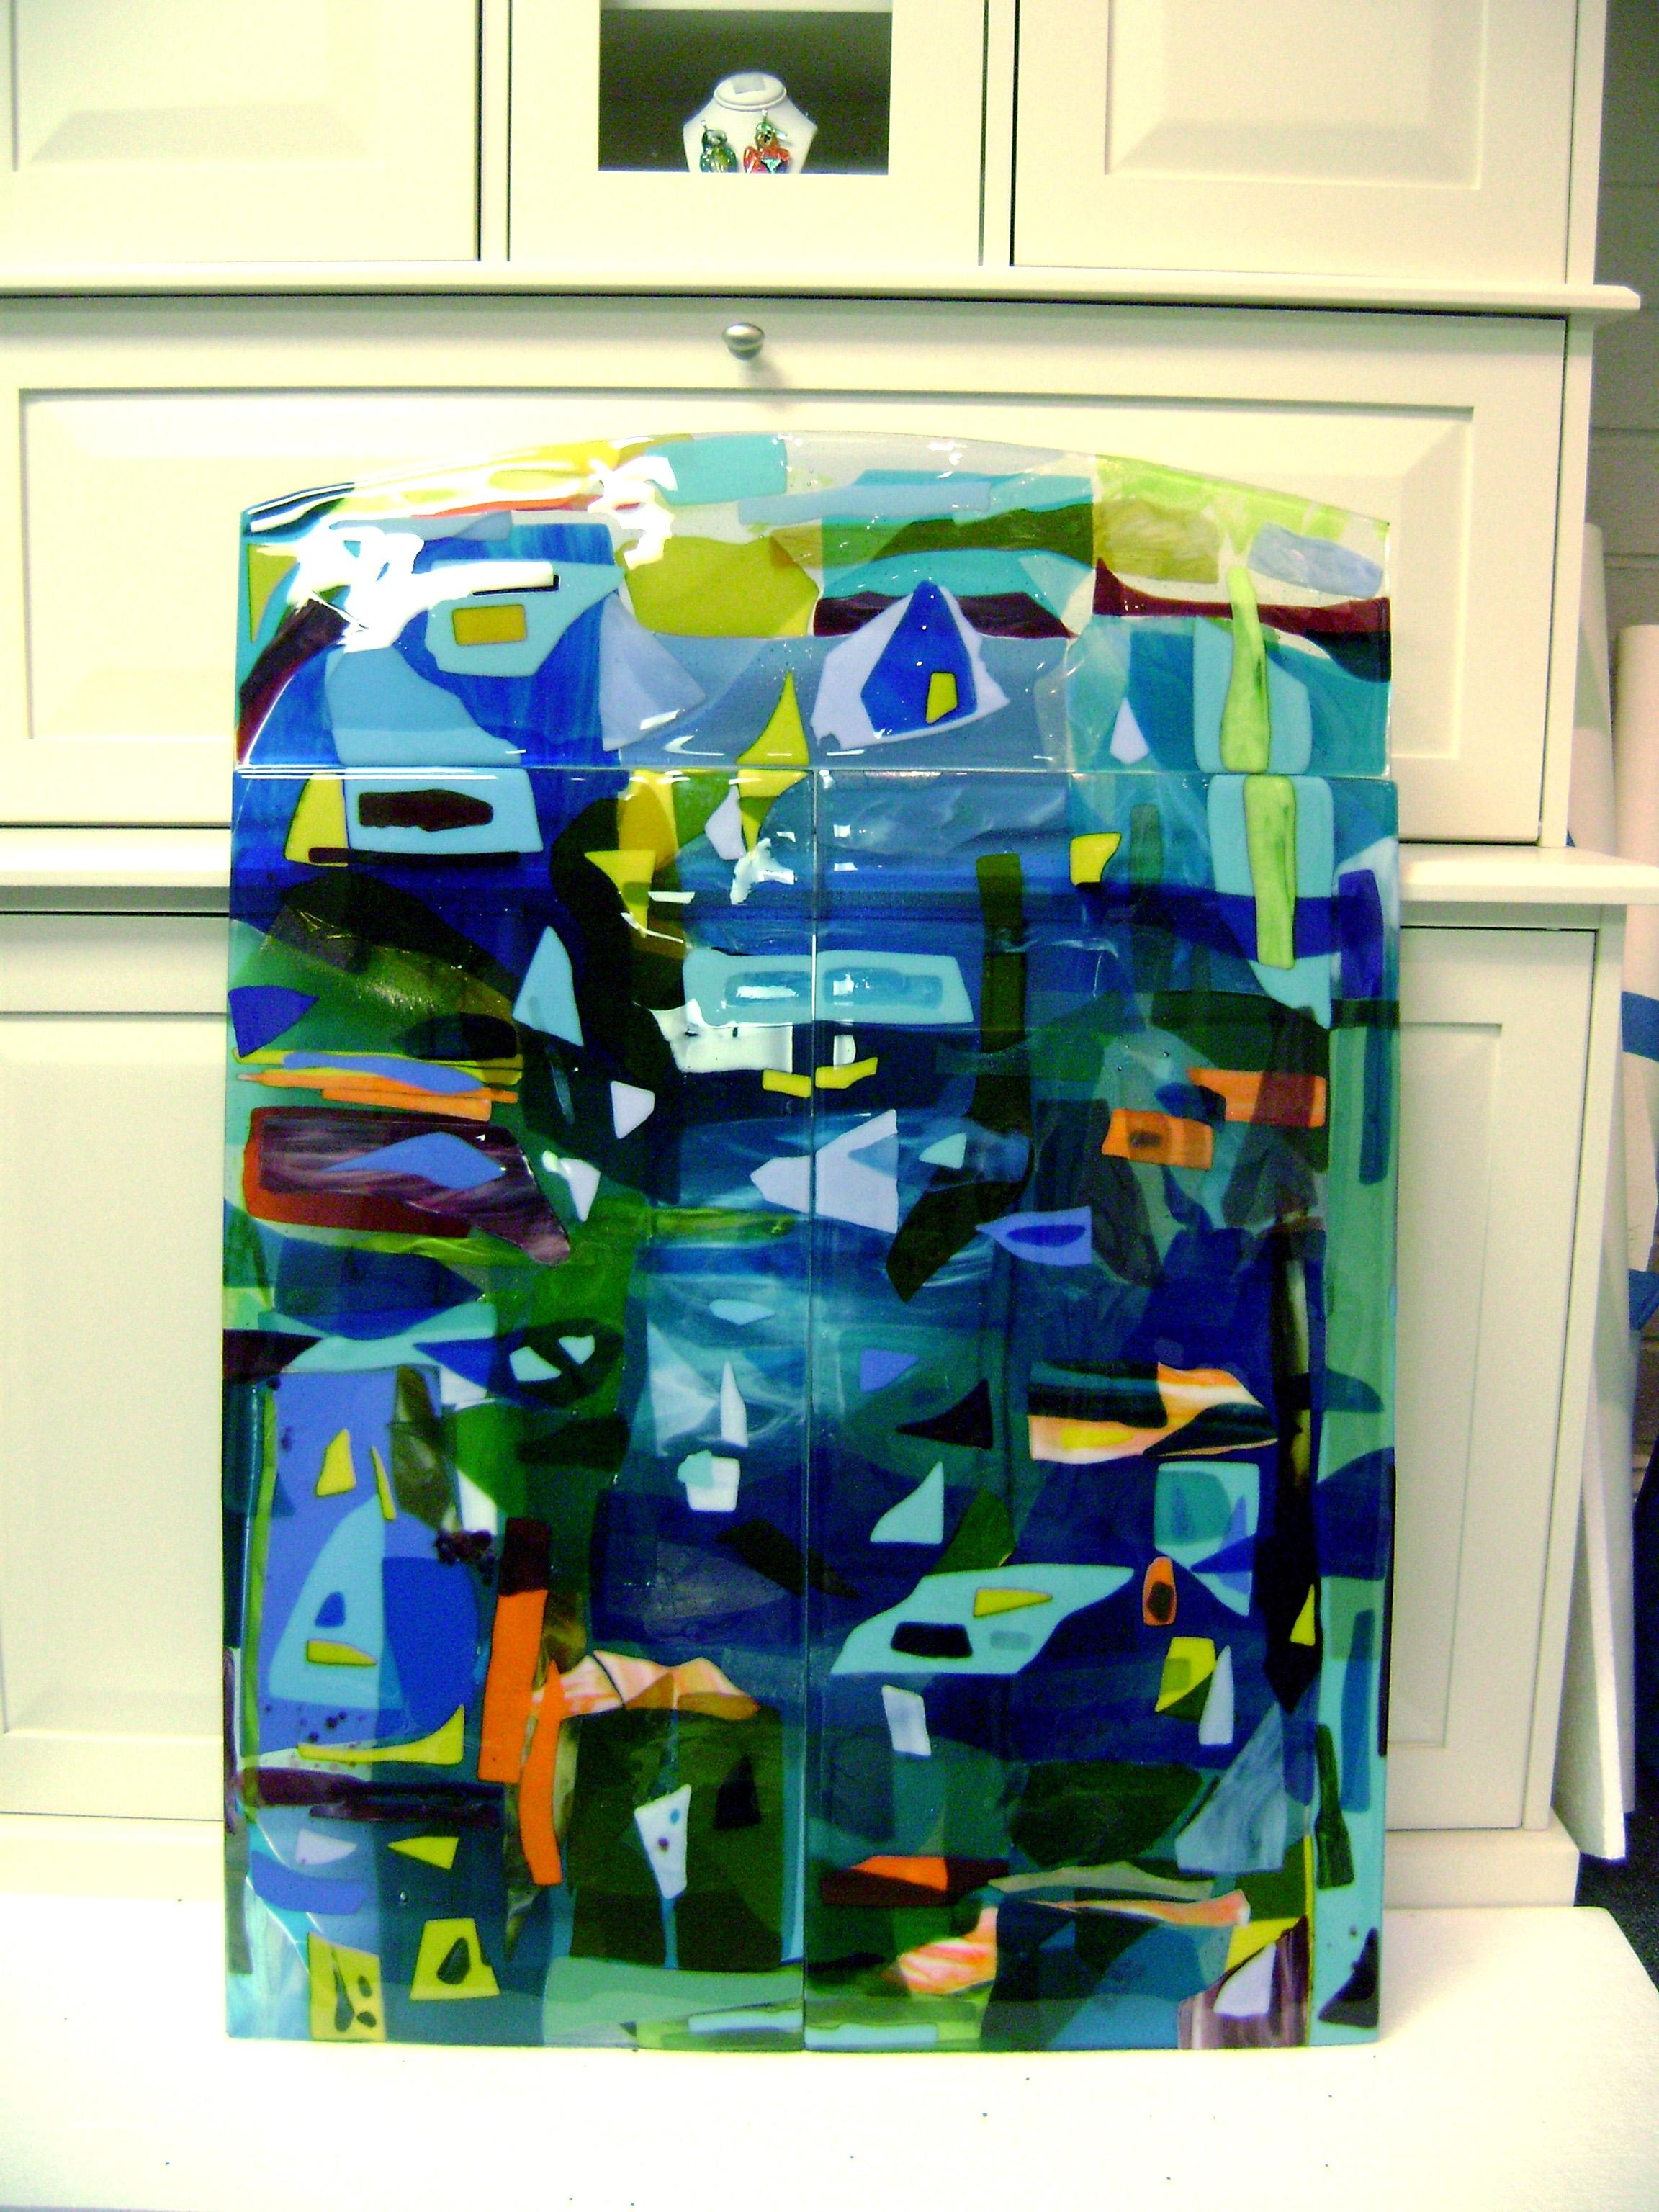 Colorful Fused Glass Wall Art Panel | Designer Glass Mosaics Inside Fused Glass Wall Art (View 14 of 20)